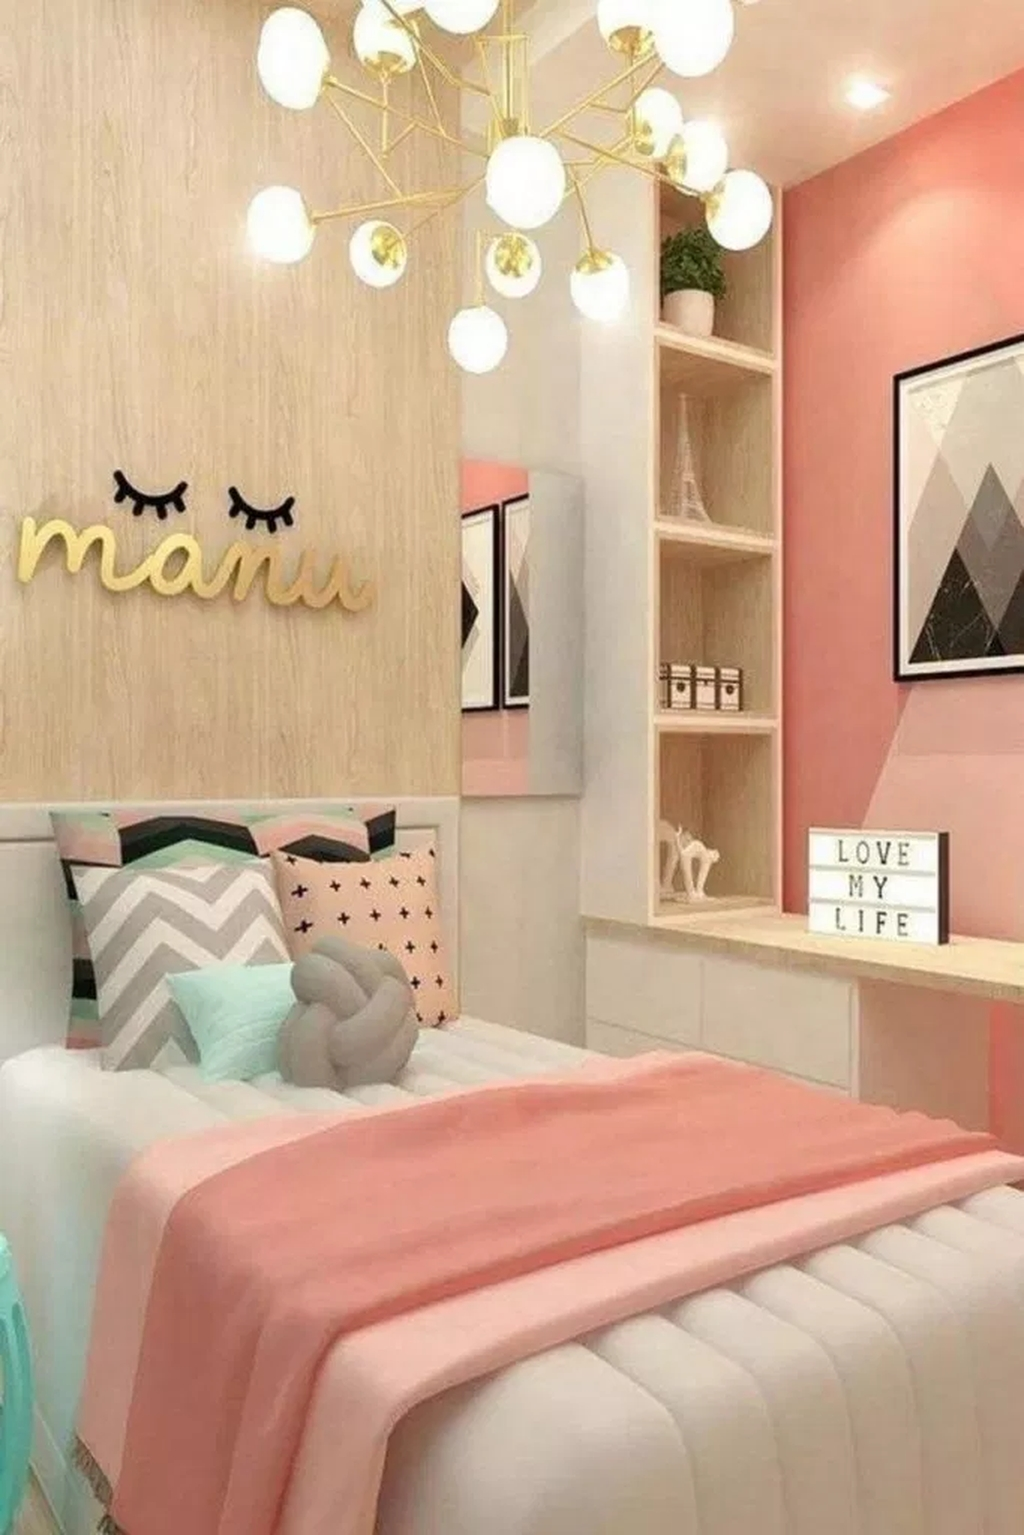 20+ Beautiful Girls Bedroom Ideas For Small Rooms To Try ...